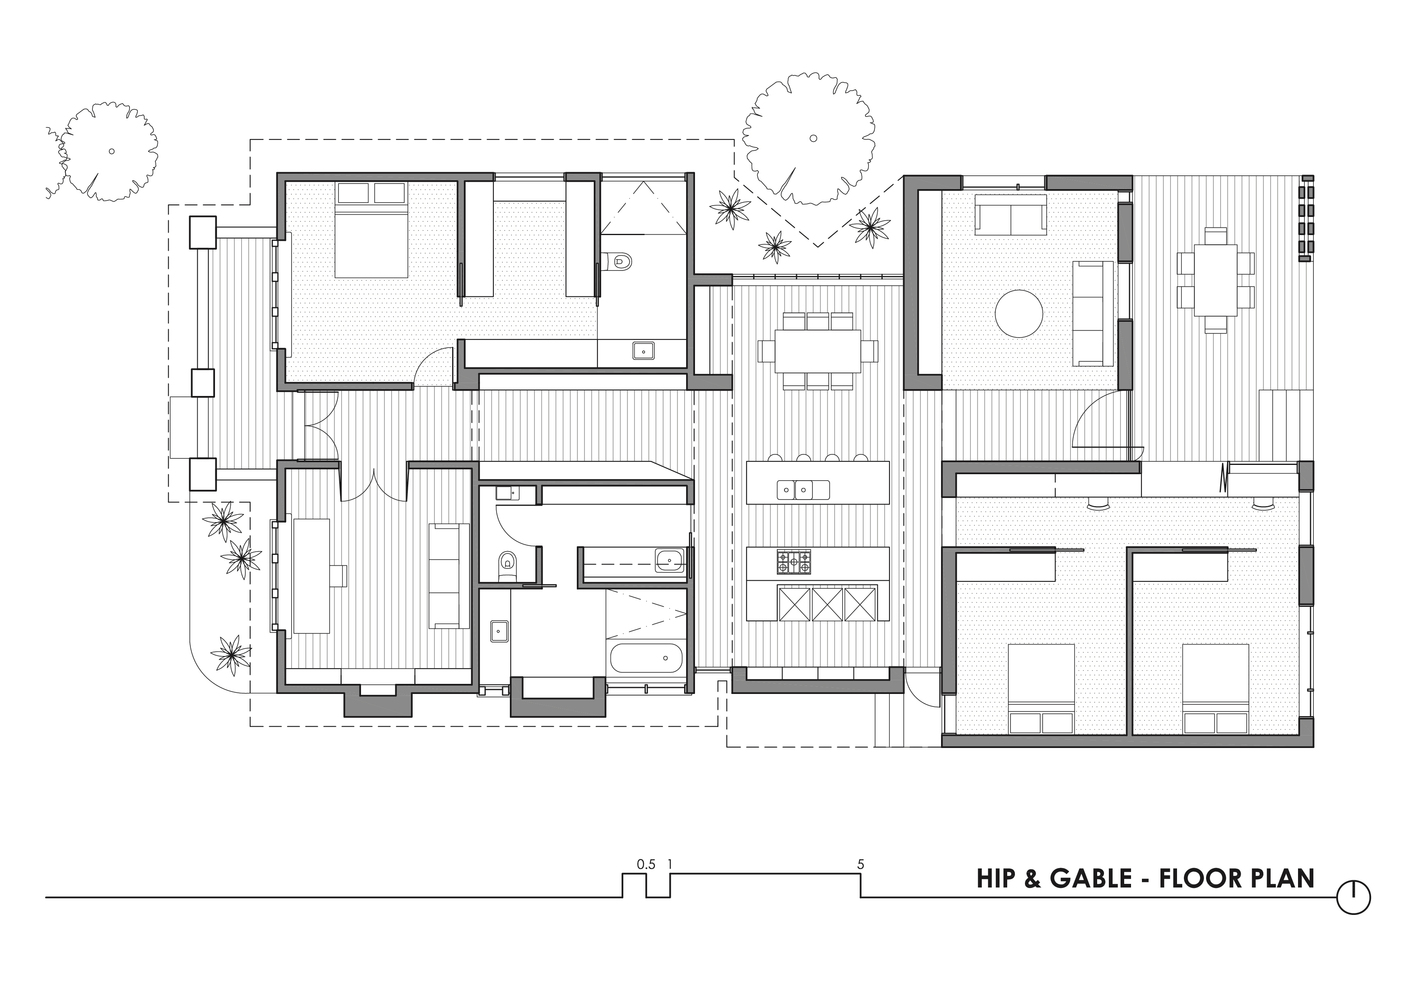 hight resolution of hip gable house architecture architecture